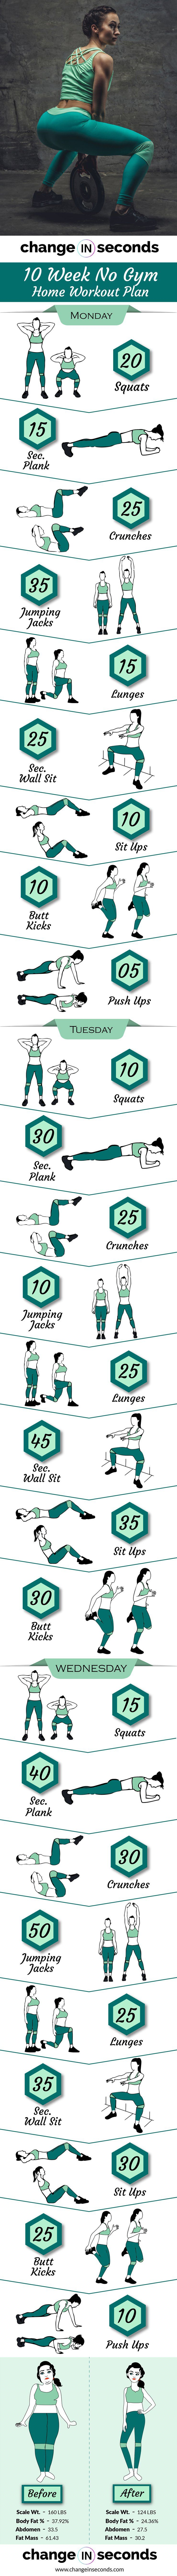 10 Week No Gym Home Workout Plan (Download PDF) | Workout